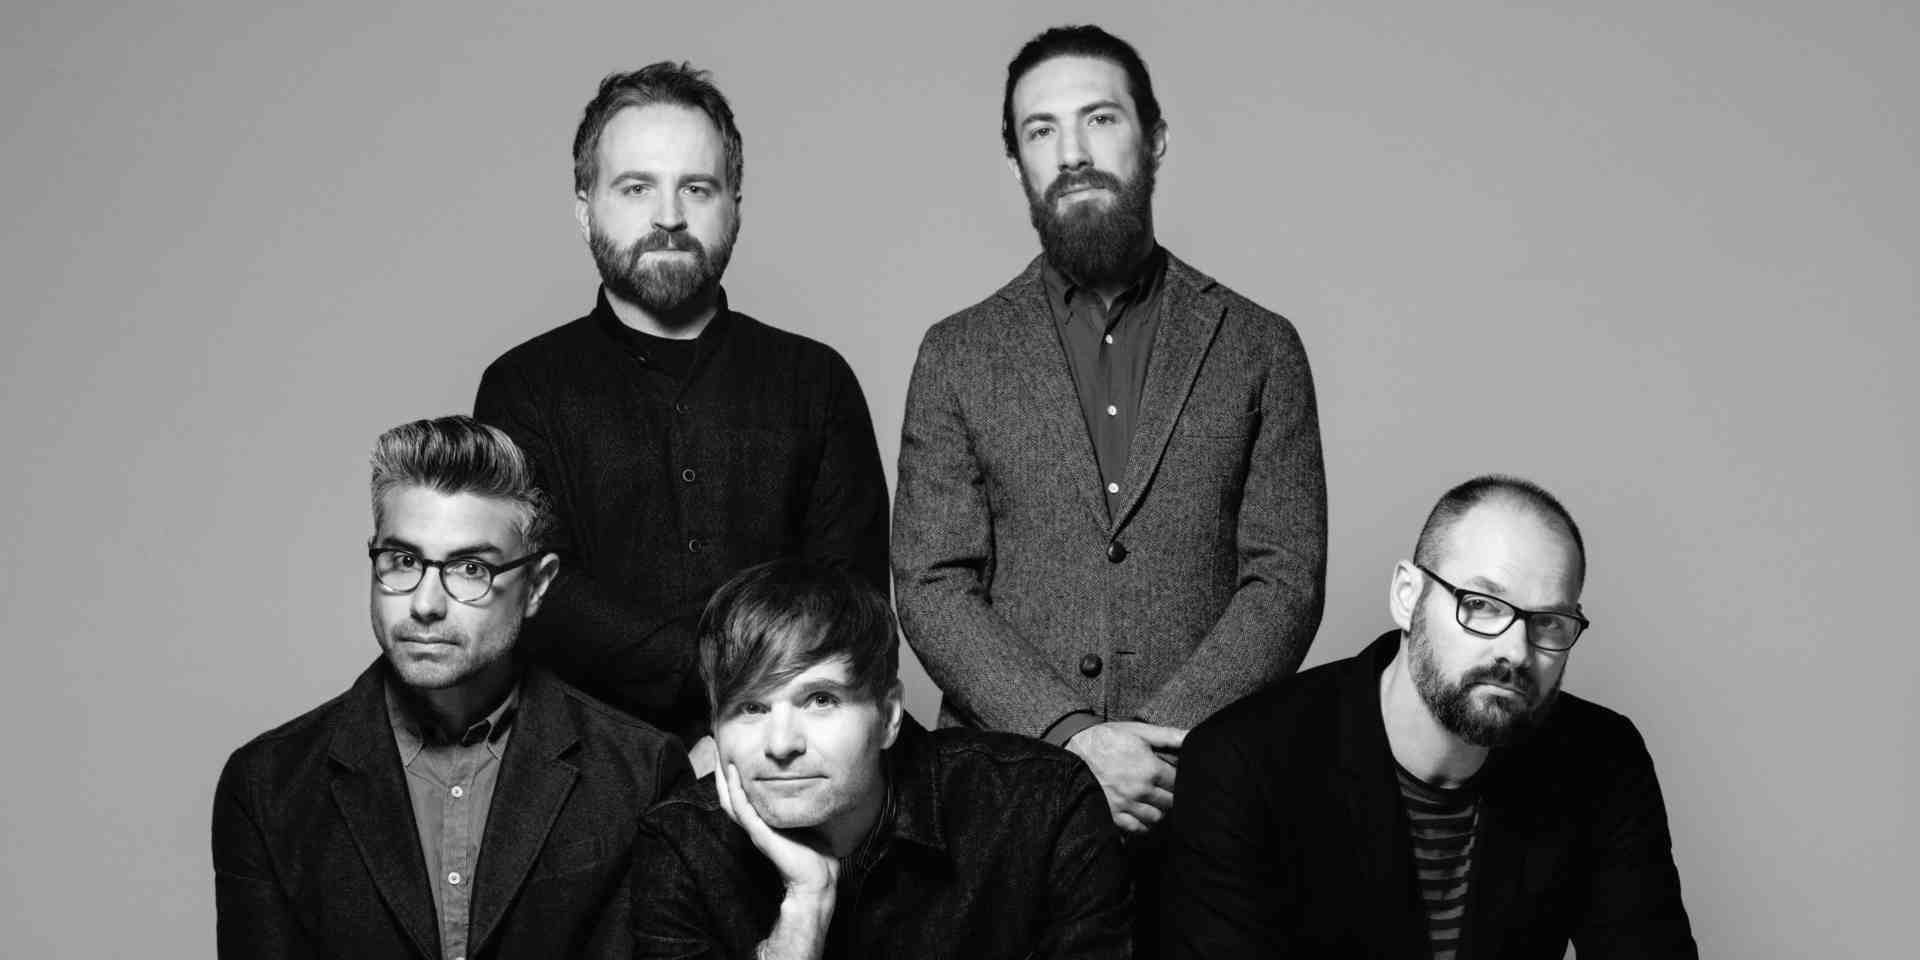 """""""When you strip it all down, we're just five people that really love playing music together"""": An interview with Nick Harmer of Death Cab for Cutie"""